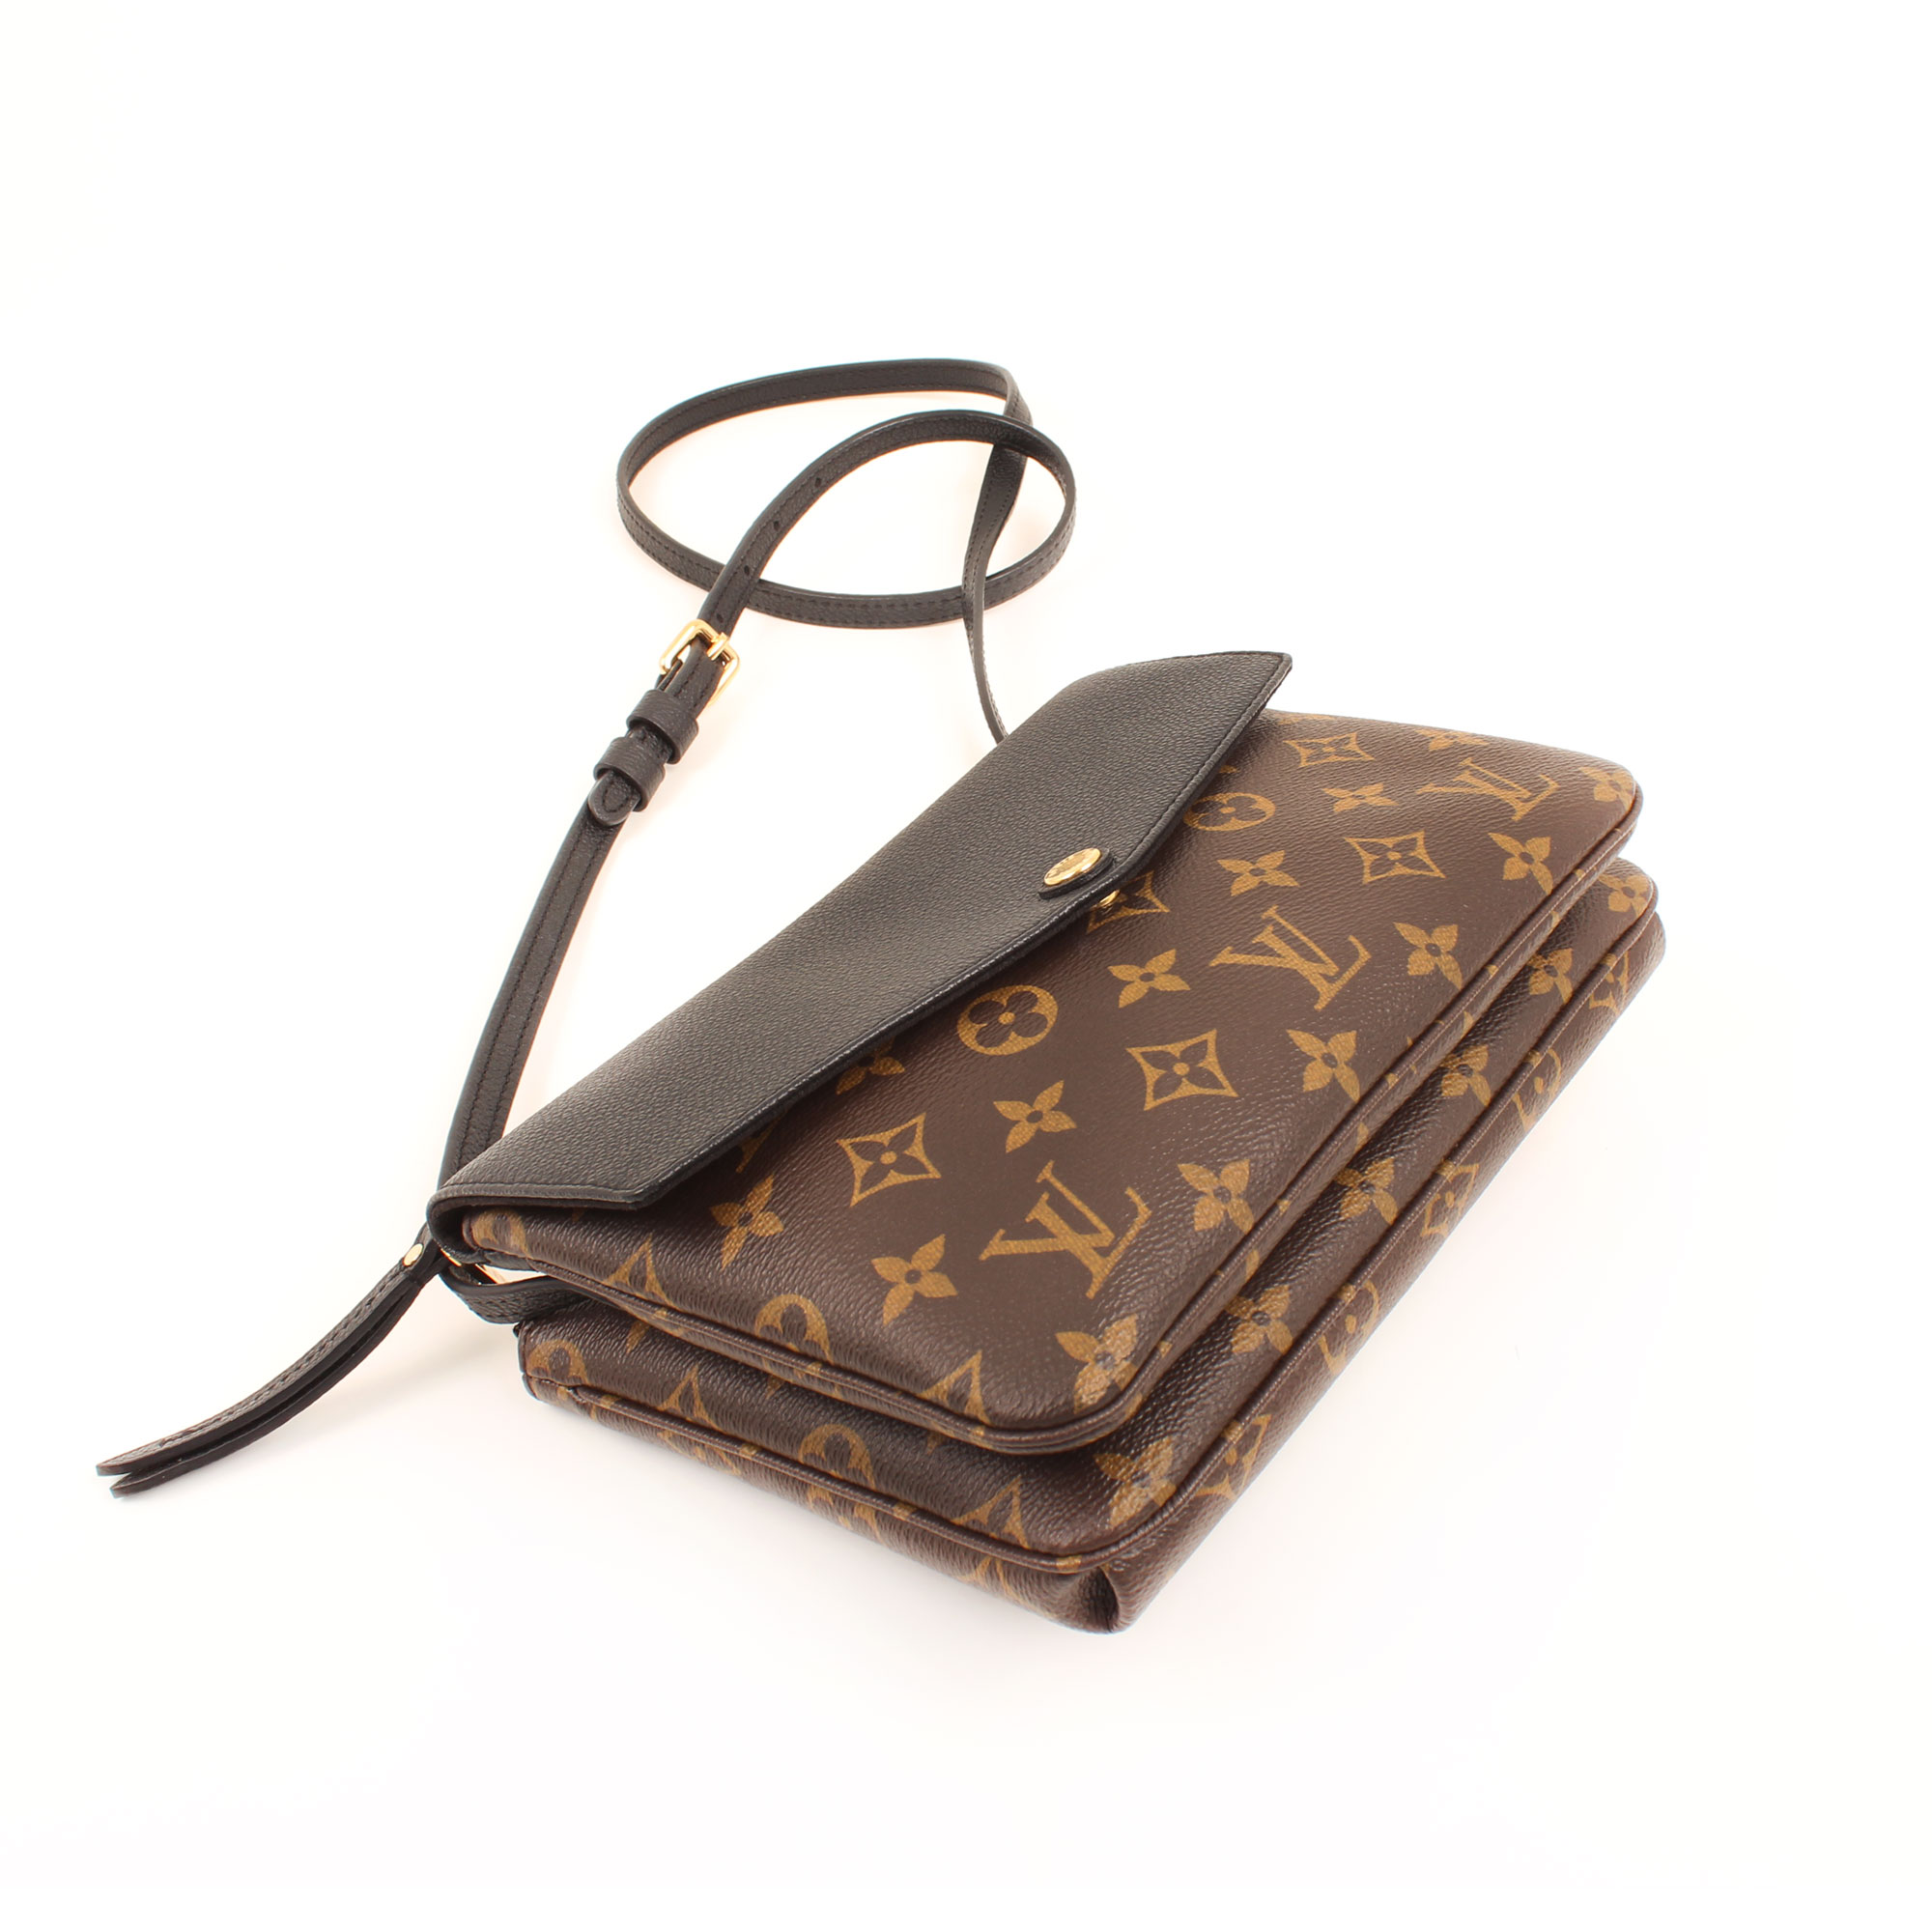 Imagen general del bolso louis vuitton twice bandolera monogram